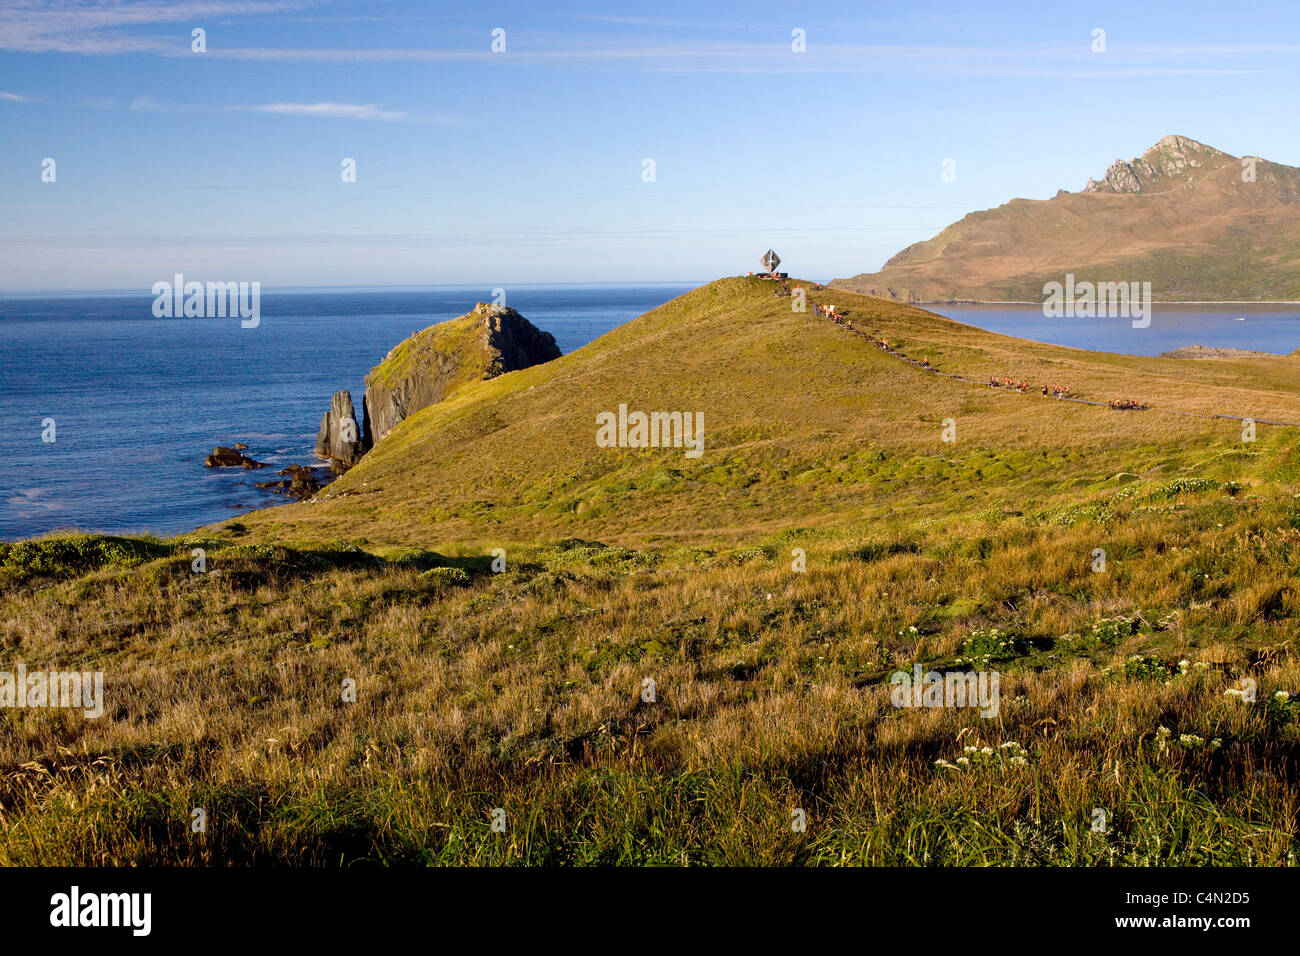 A view of Cape Horn, the southern most point in the South America, from land. - Stock Image